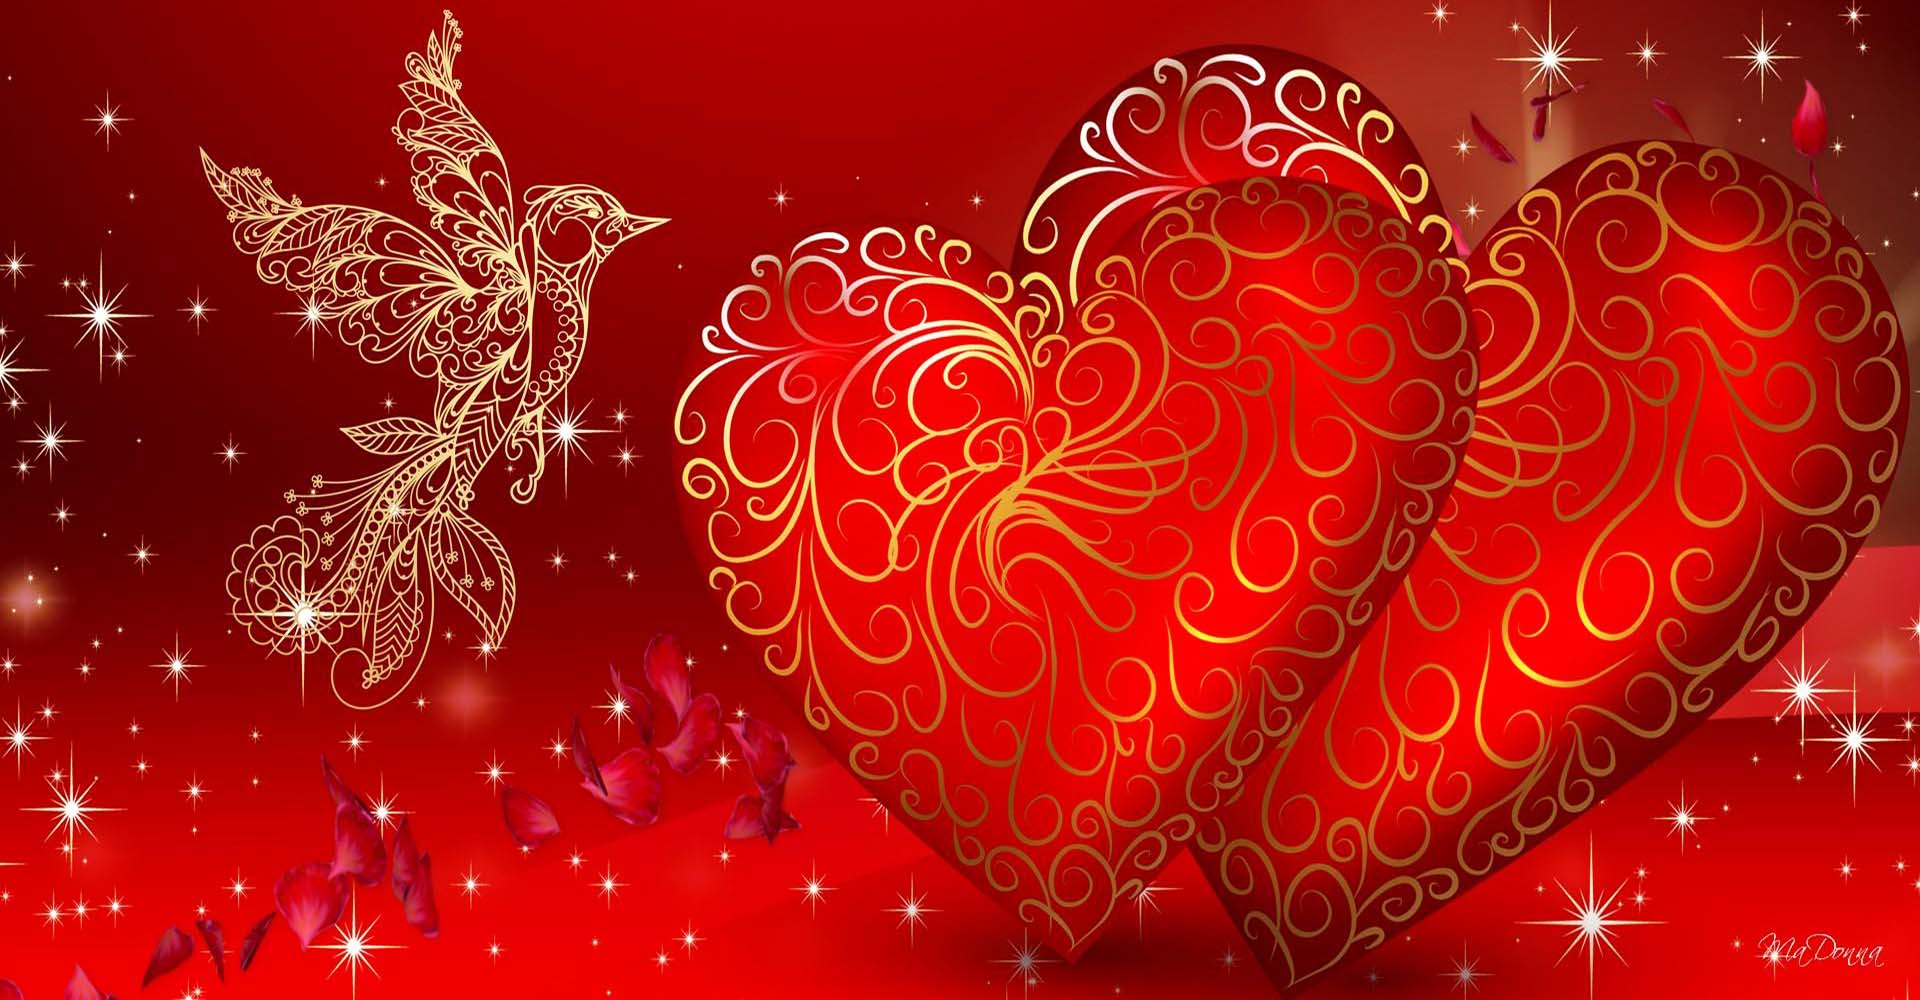 Love Wallpaper Hd Size : Love Heart Wallpapers 2016 - Wallpaper cave